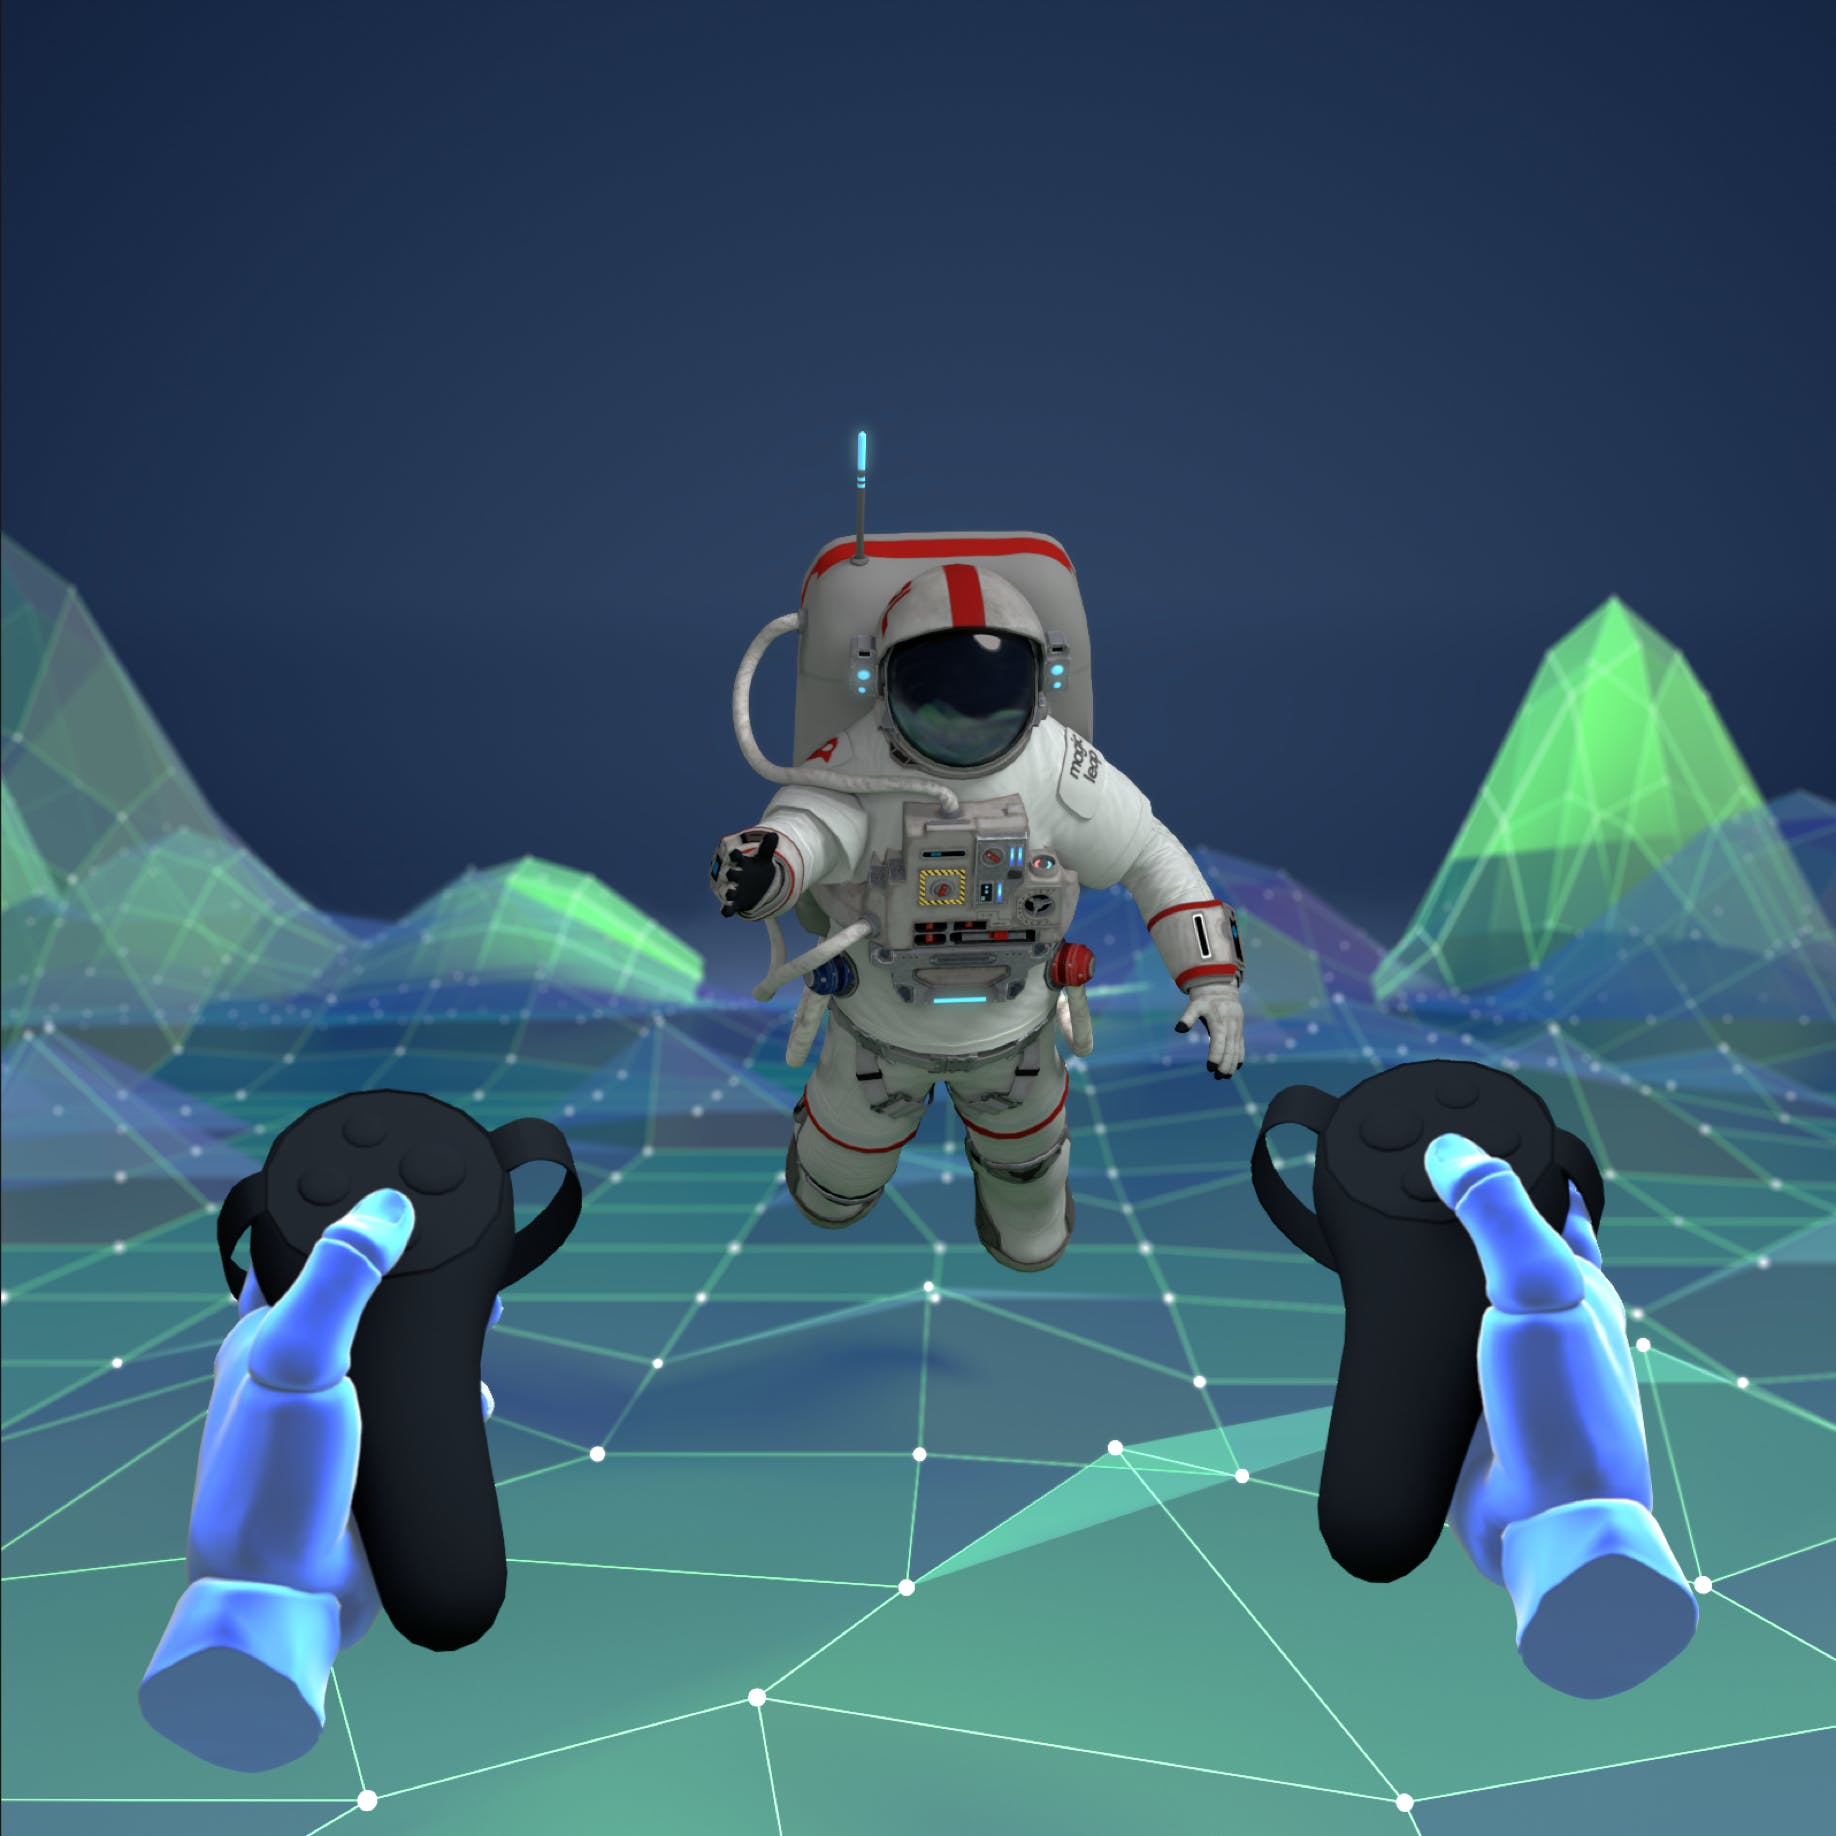 An astronaut in the VR space.